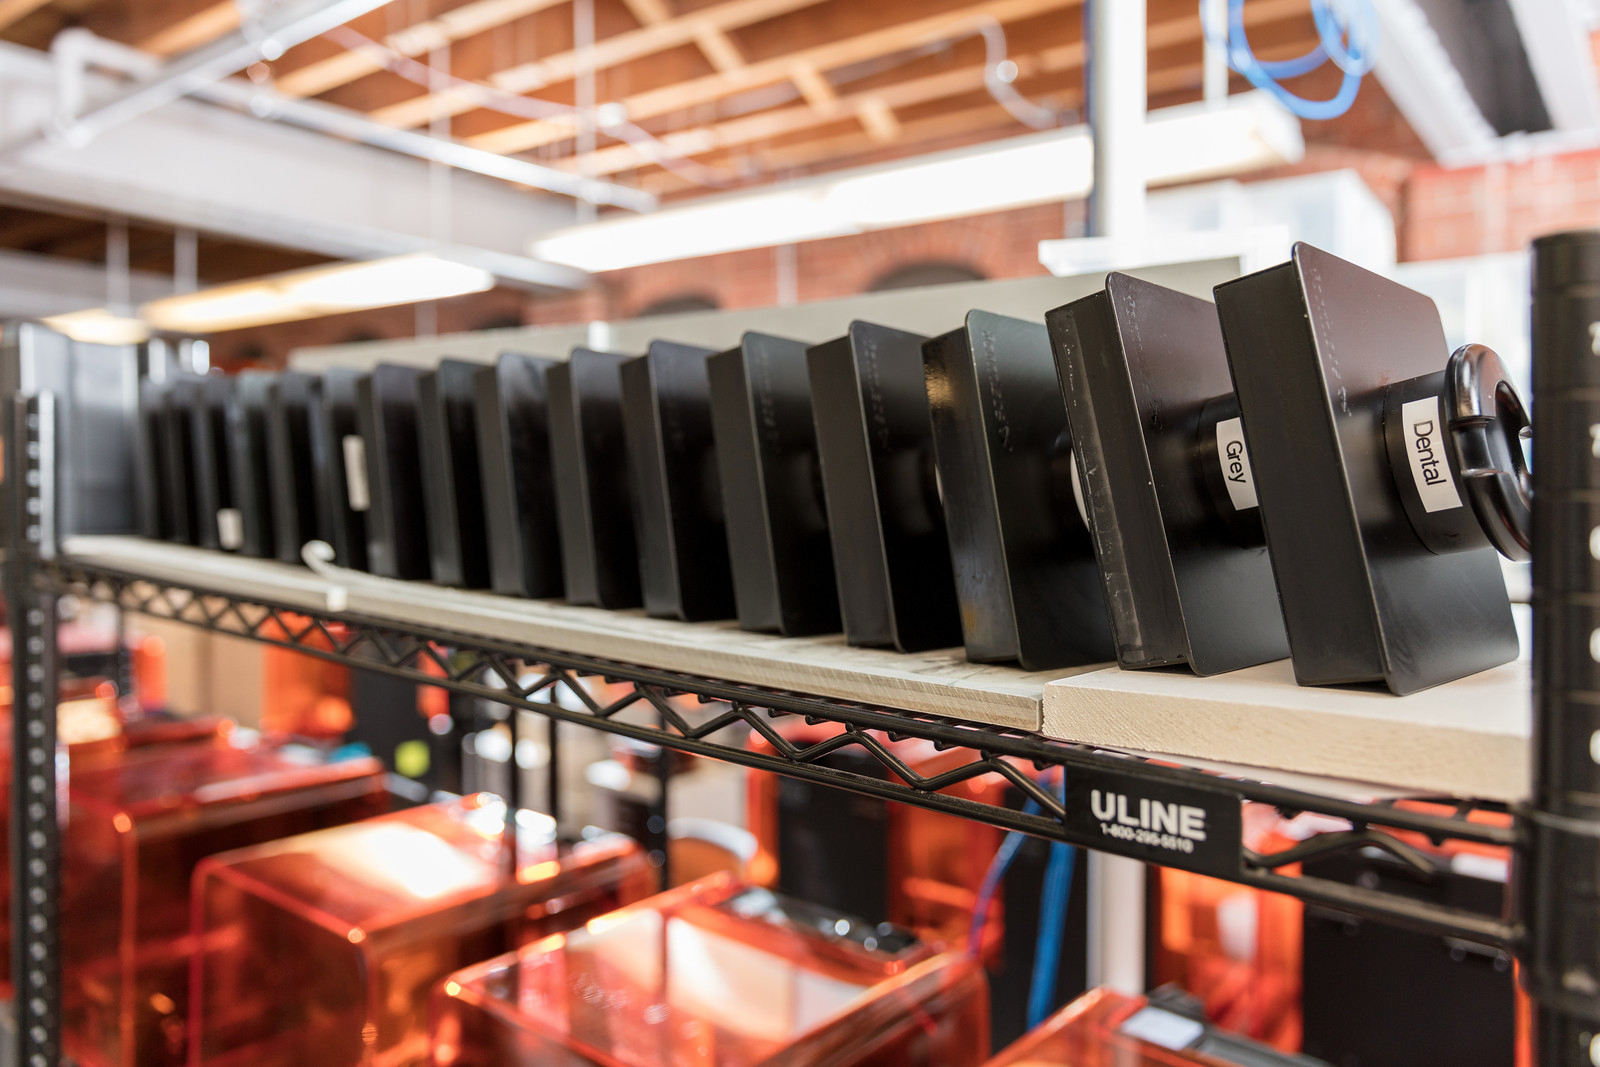 The Formlabs print production team produces hundreds of sample parts each week in multiple materials.